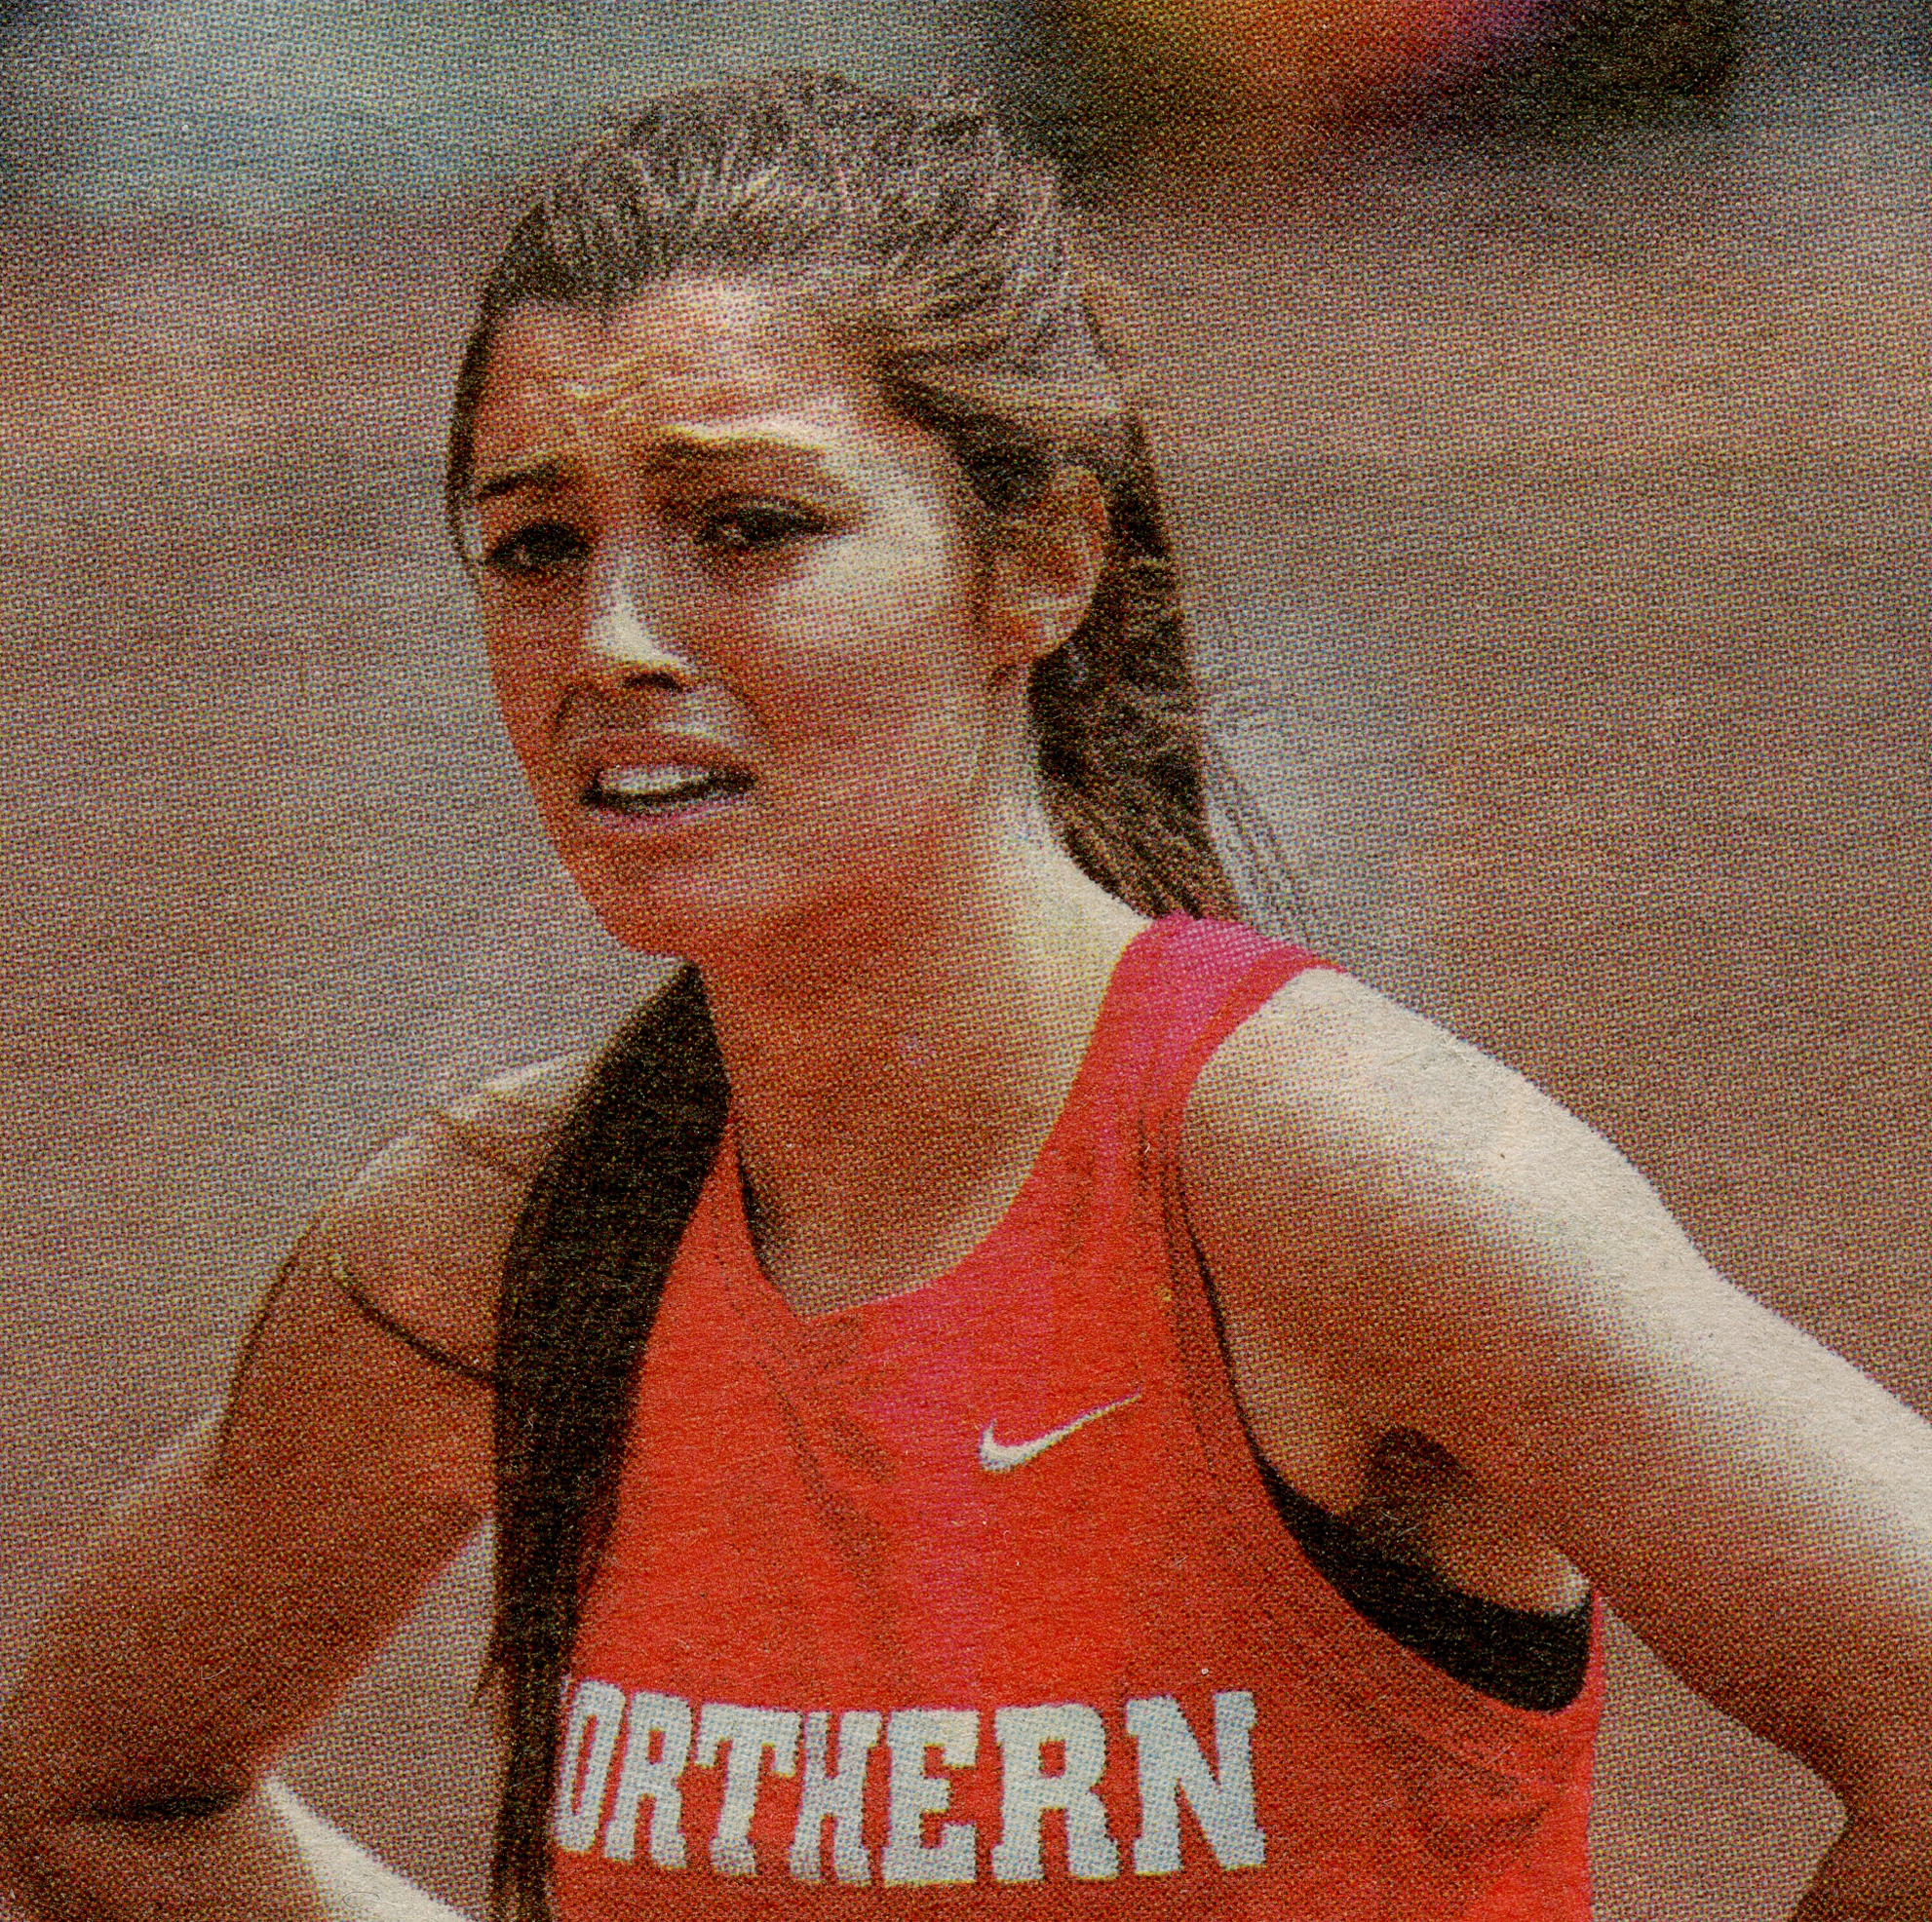 Instagram account of University of Pennsylvania runner showed only part of story